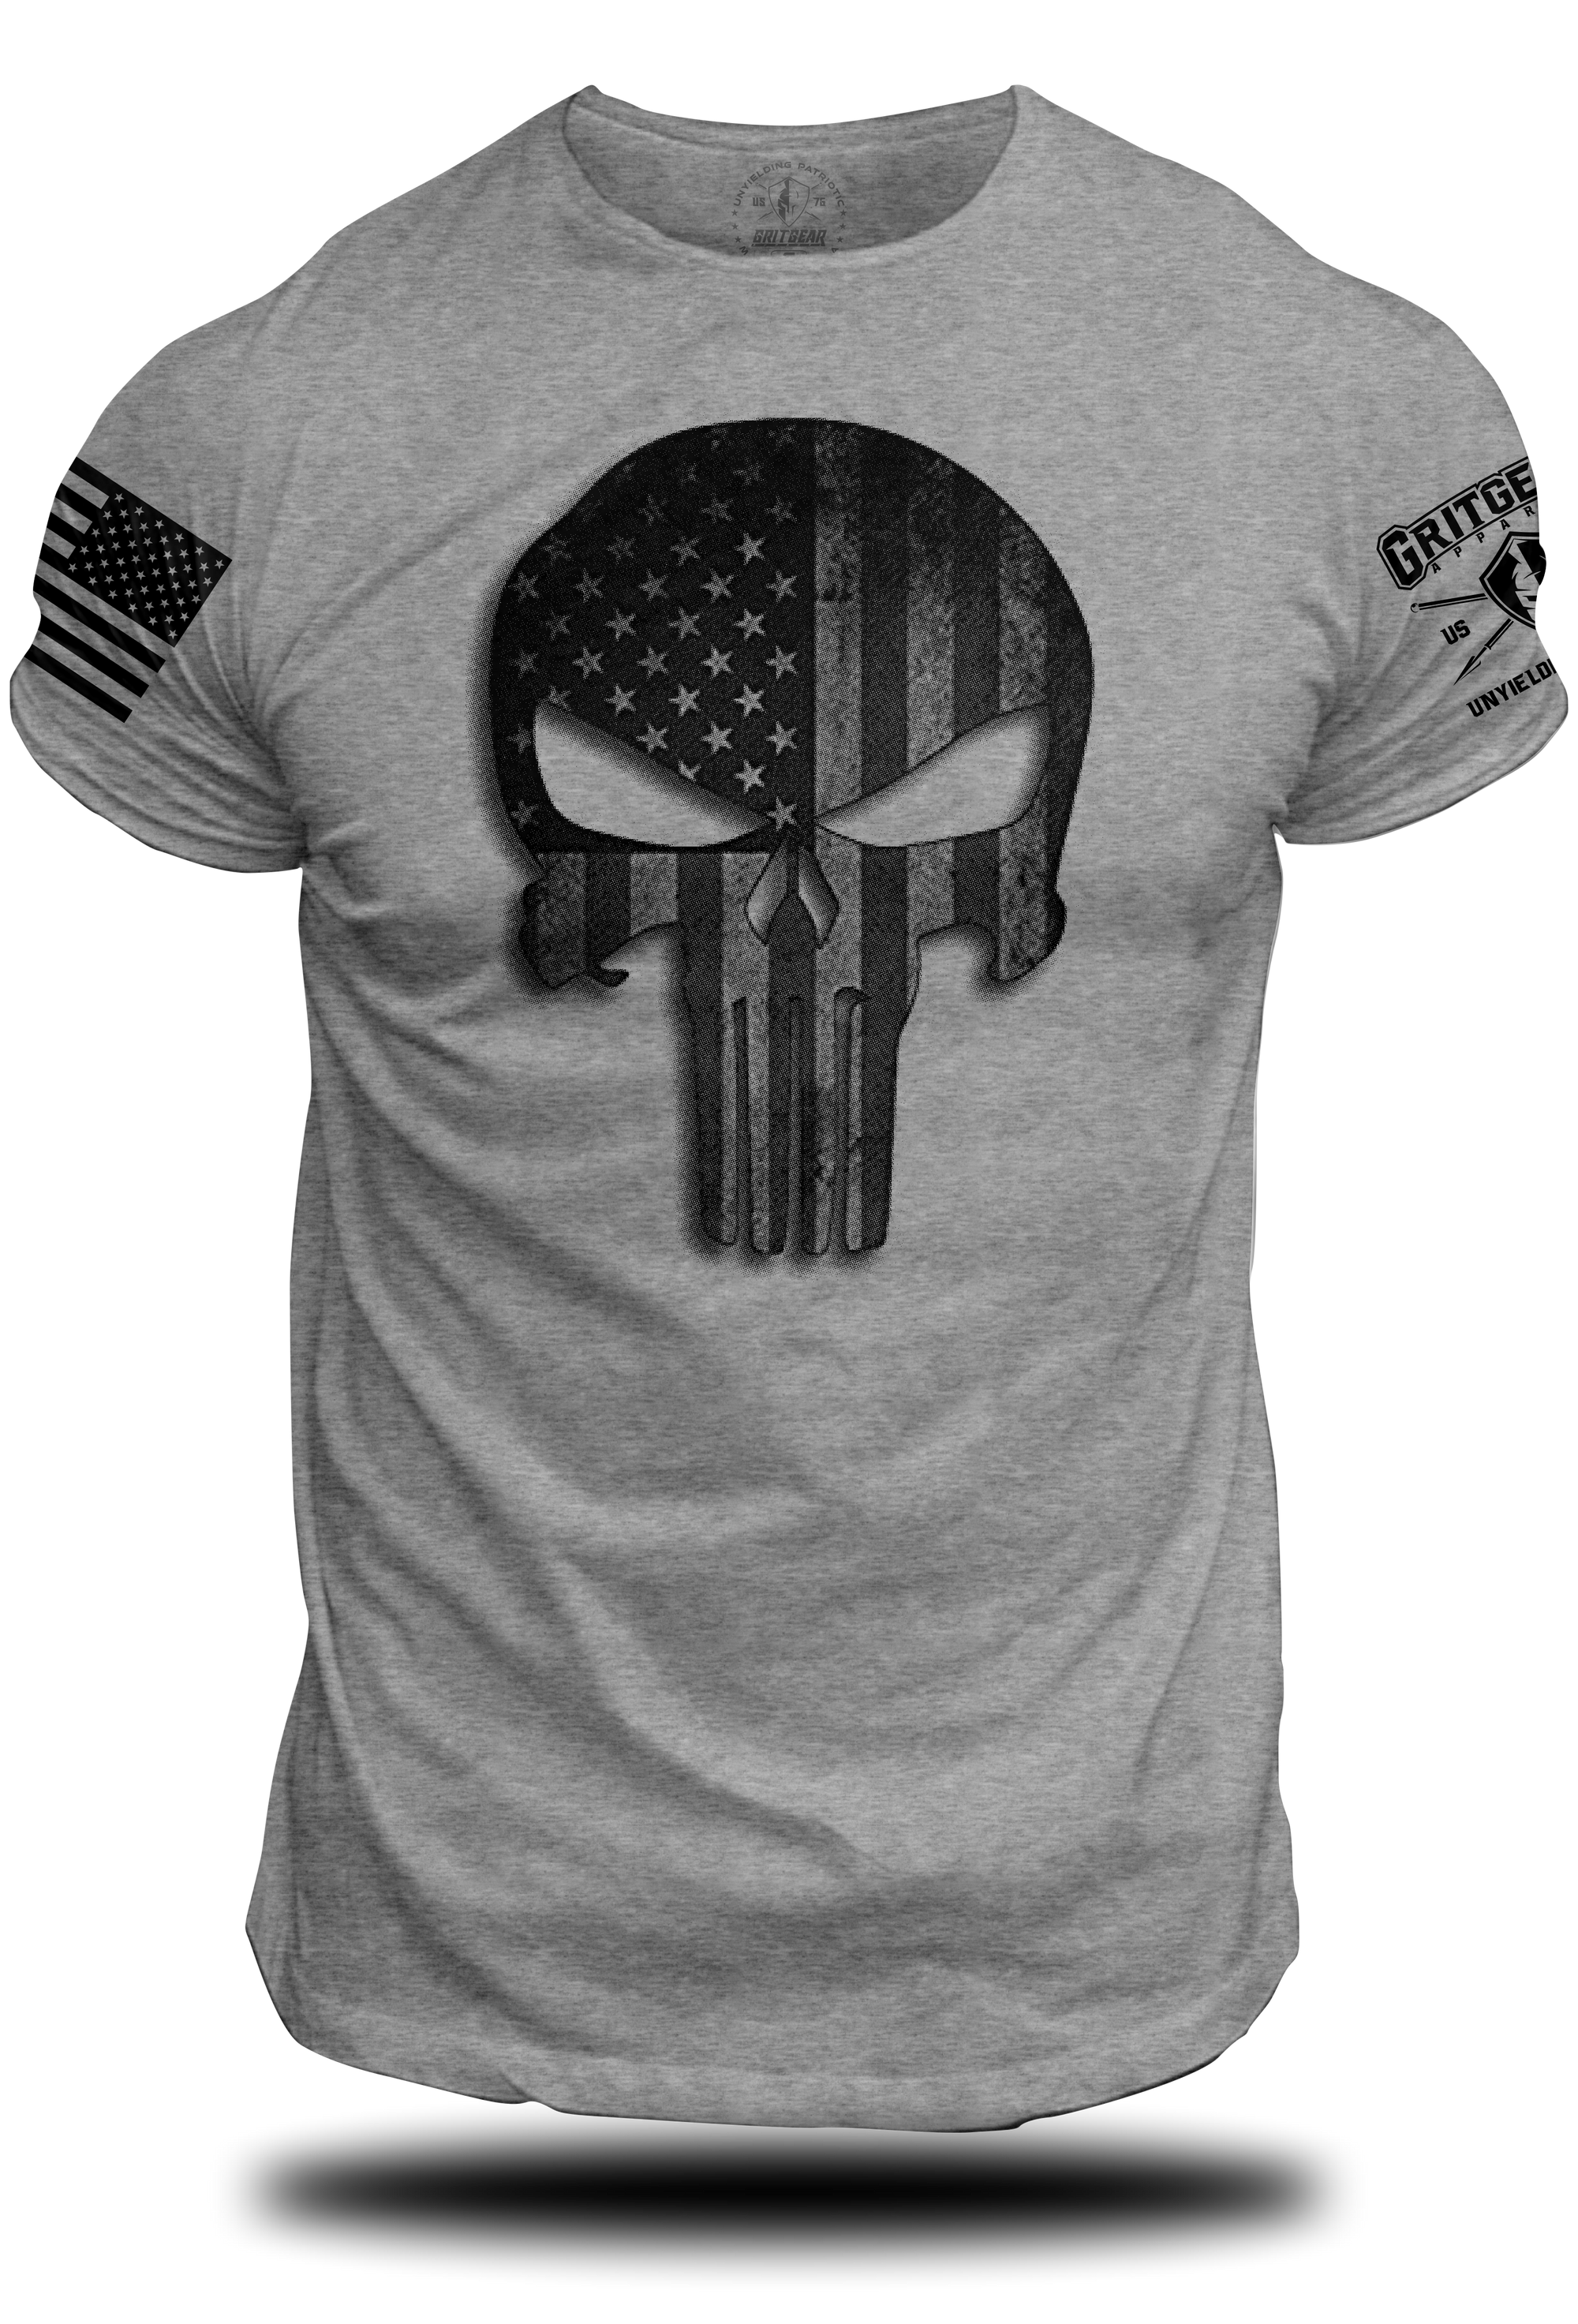 Punisher Stars and Stripes Tee | Grit Gear Apparel